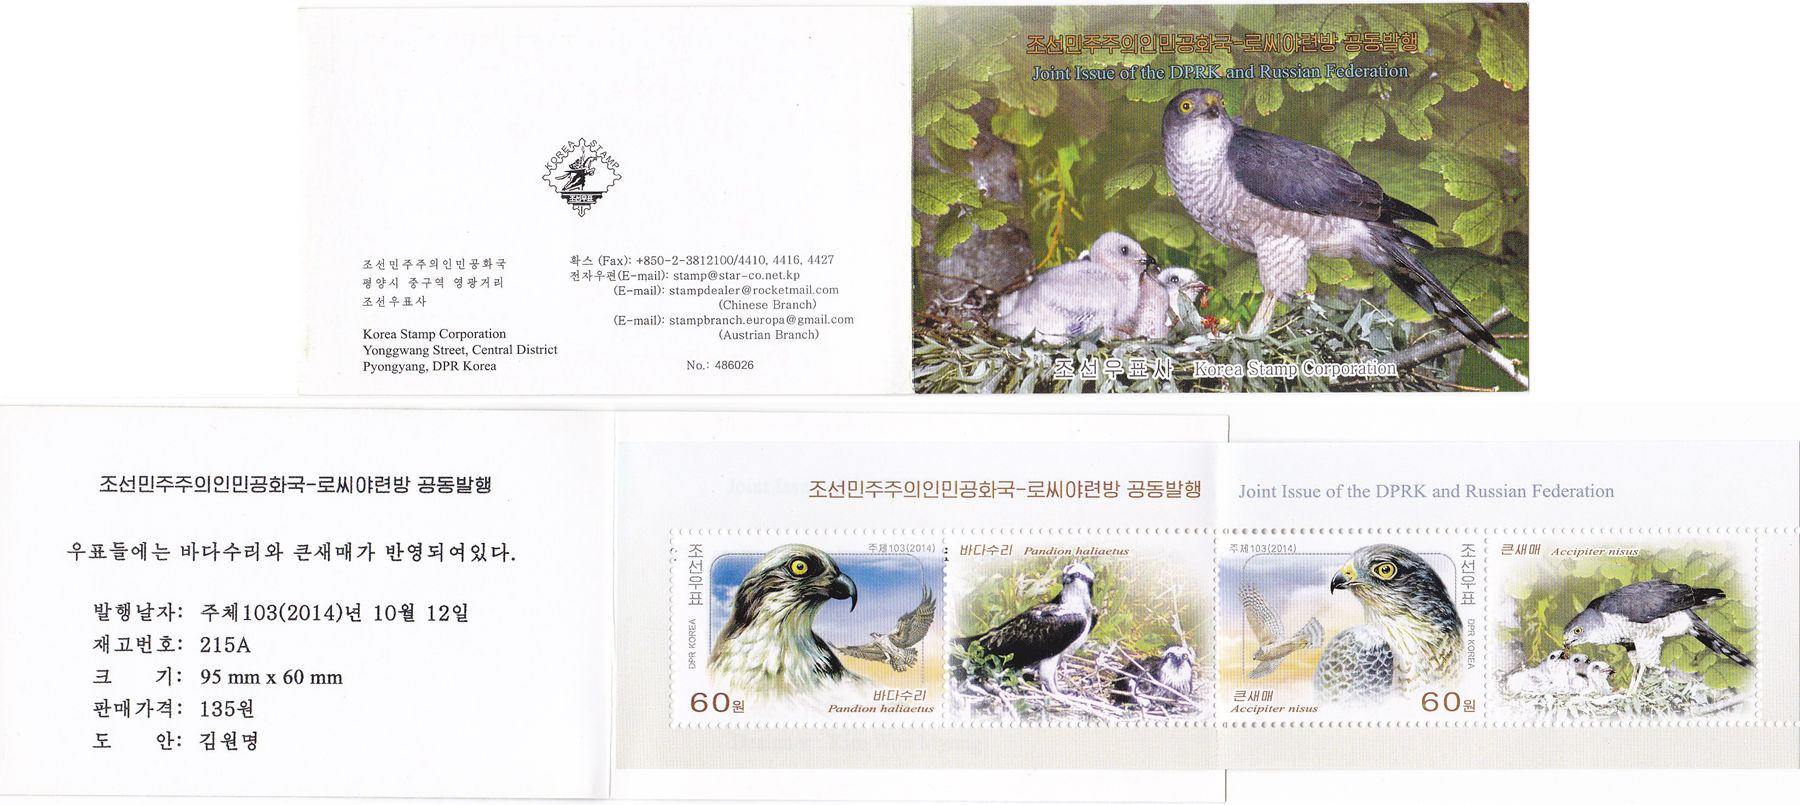 L9018, Korea Stamp Booklet, 2014 joint Issue of Korea and Russia